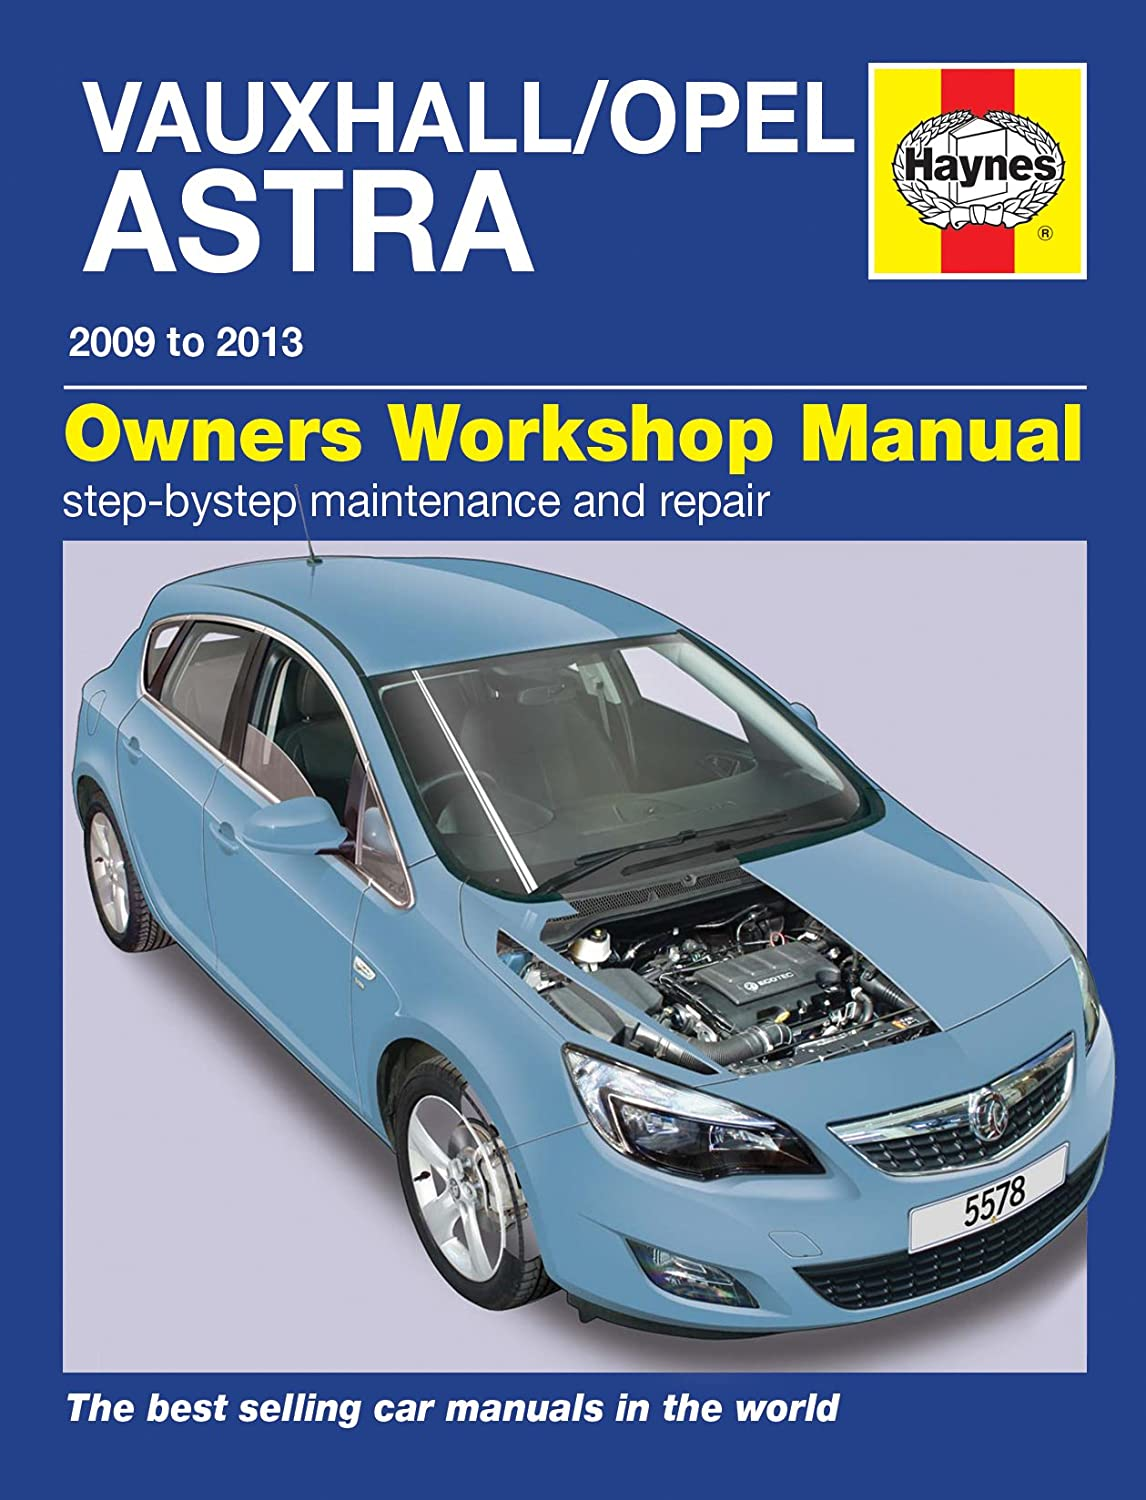 vauxhall astra owners manual 2001 user guide manual that easy to rh mobiservicemanual today vauxhall astra g owners manual pdf vauxhall astra owners manual 2007